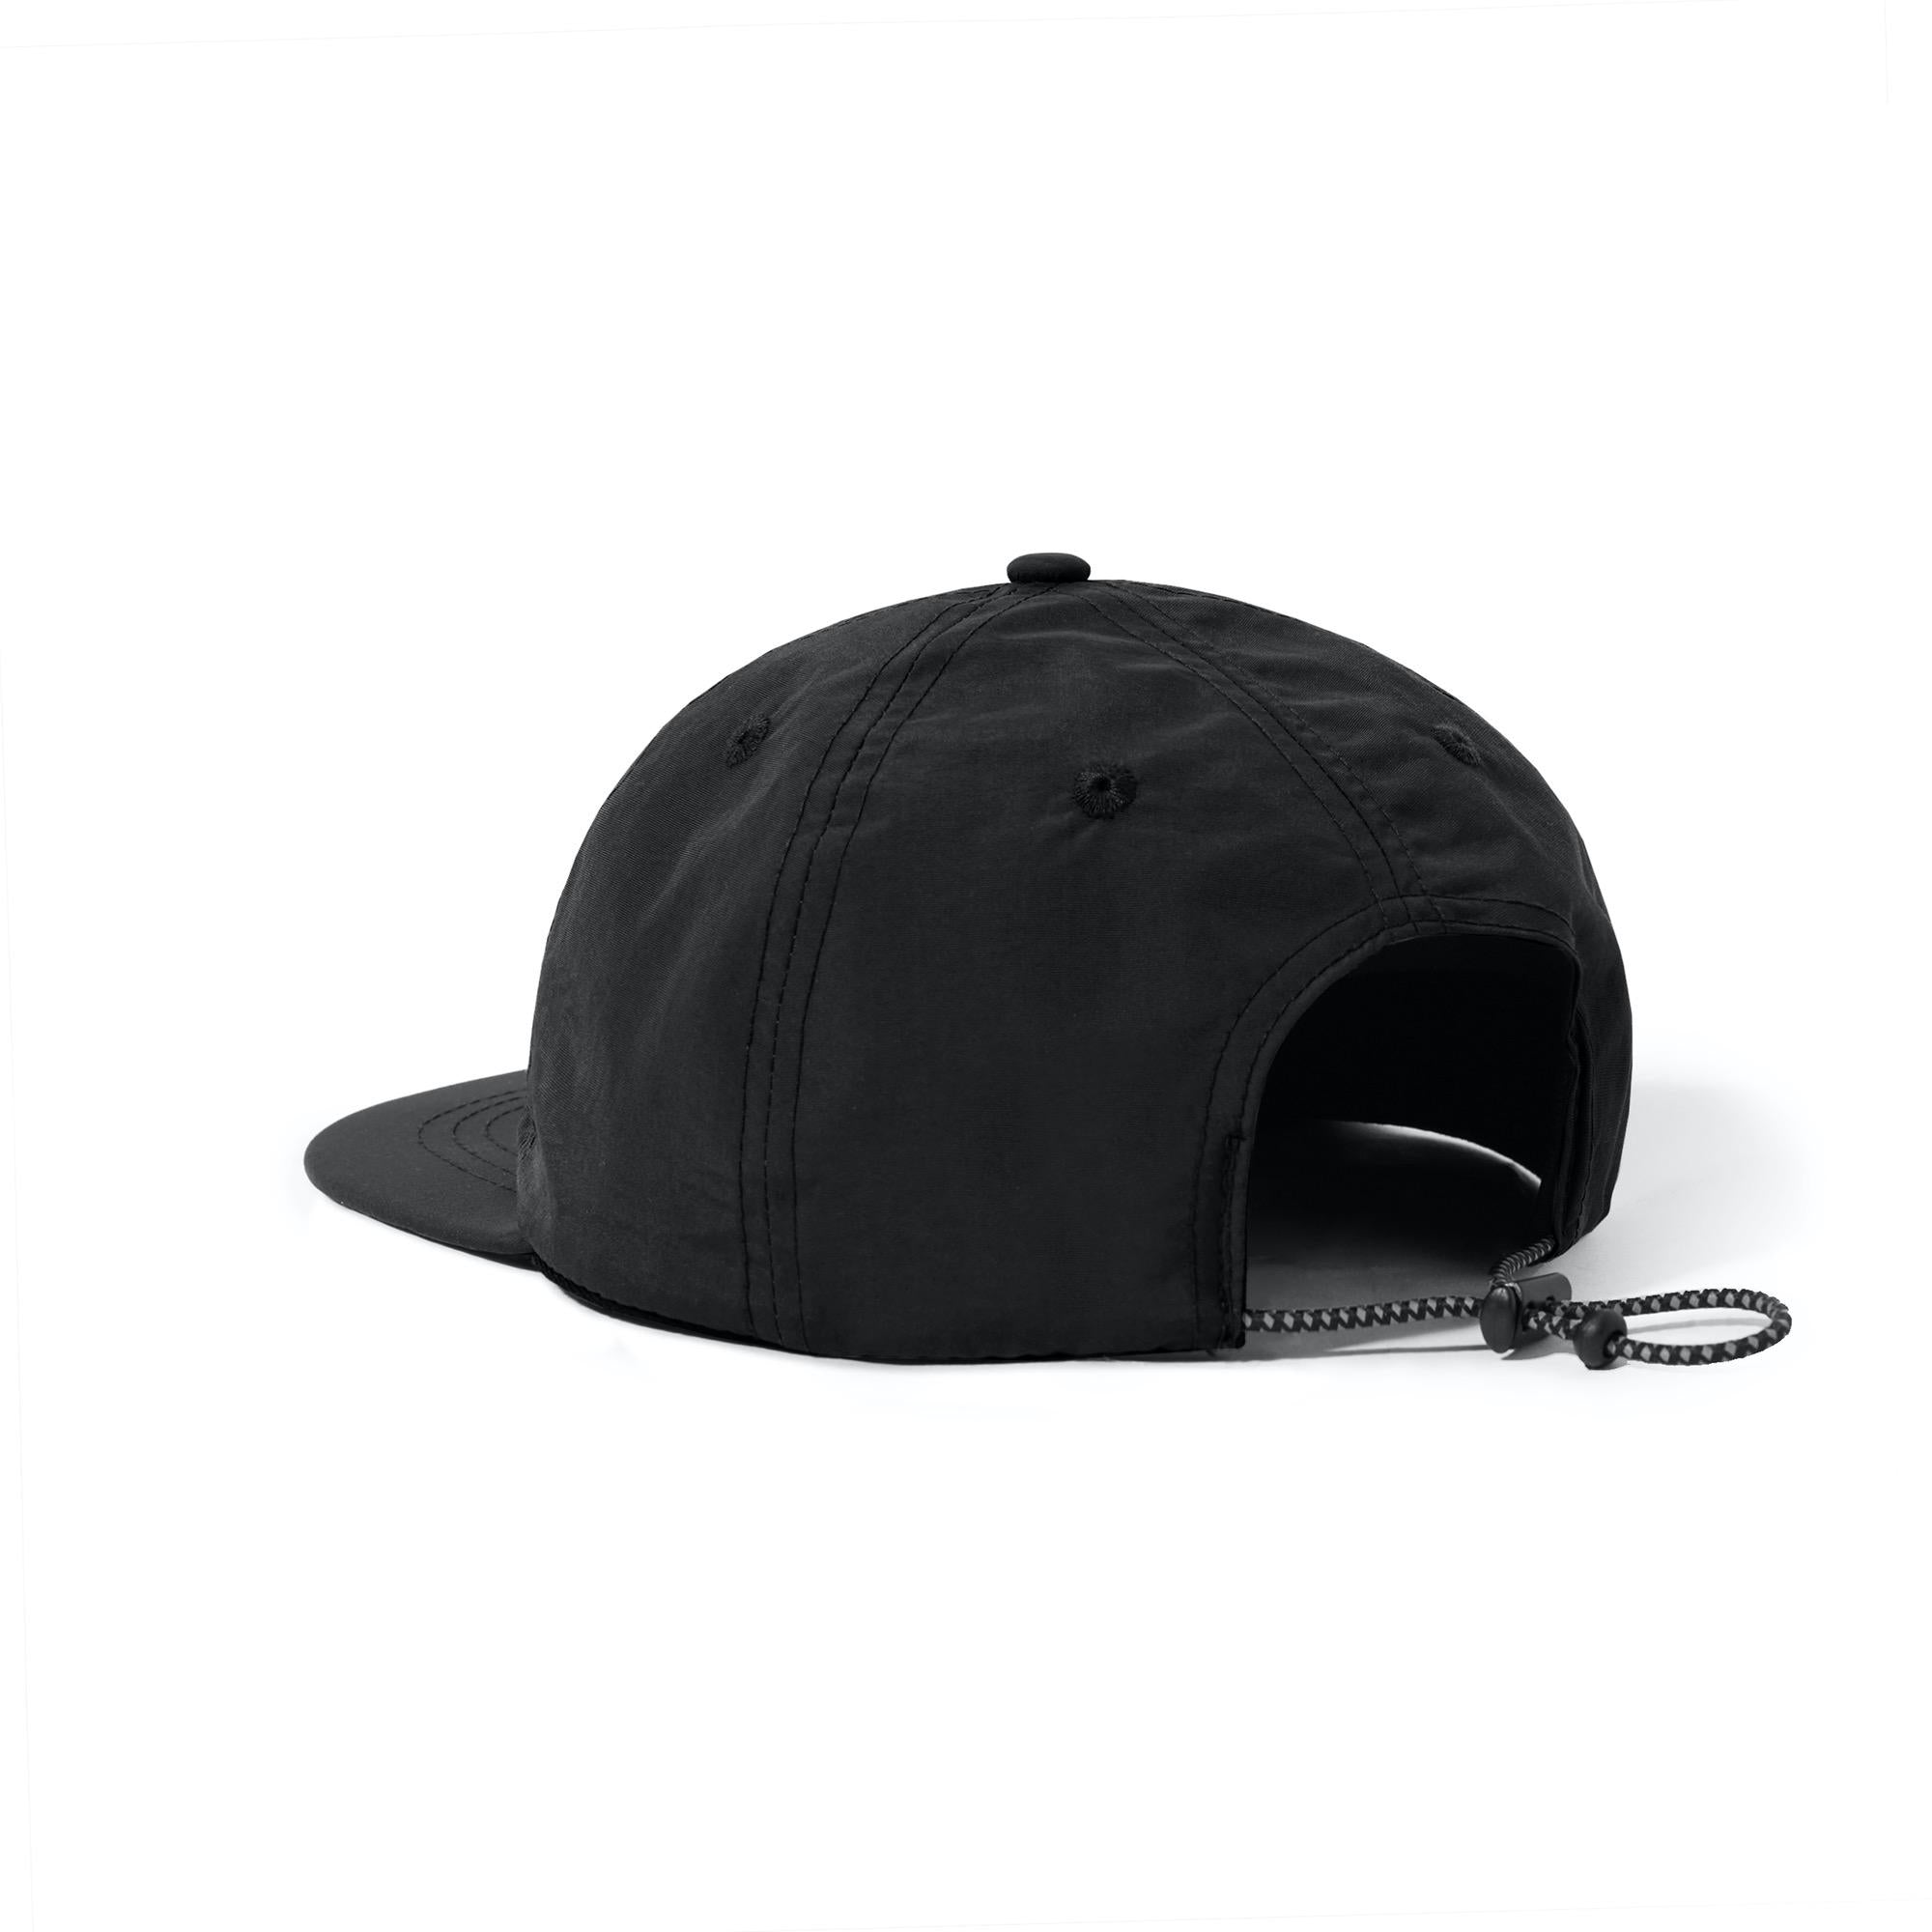 Cash Only Logo 6 Panel Cap Product Photo #2